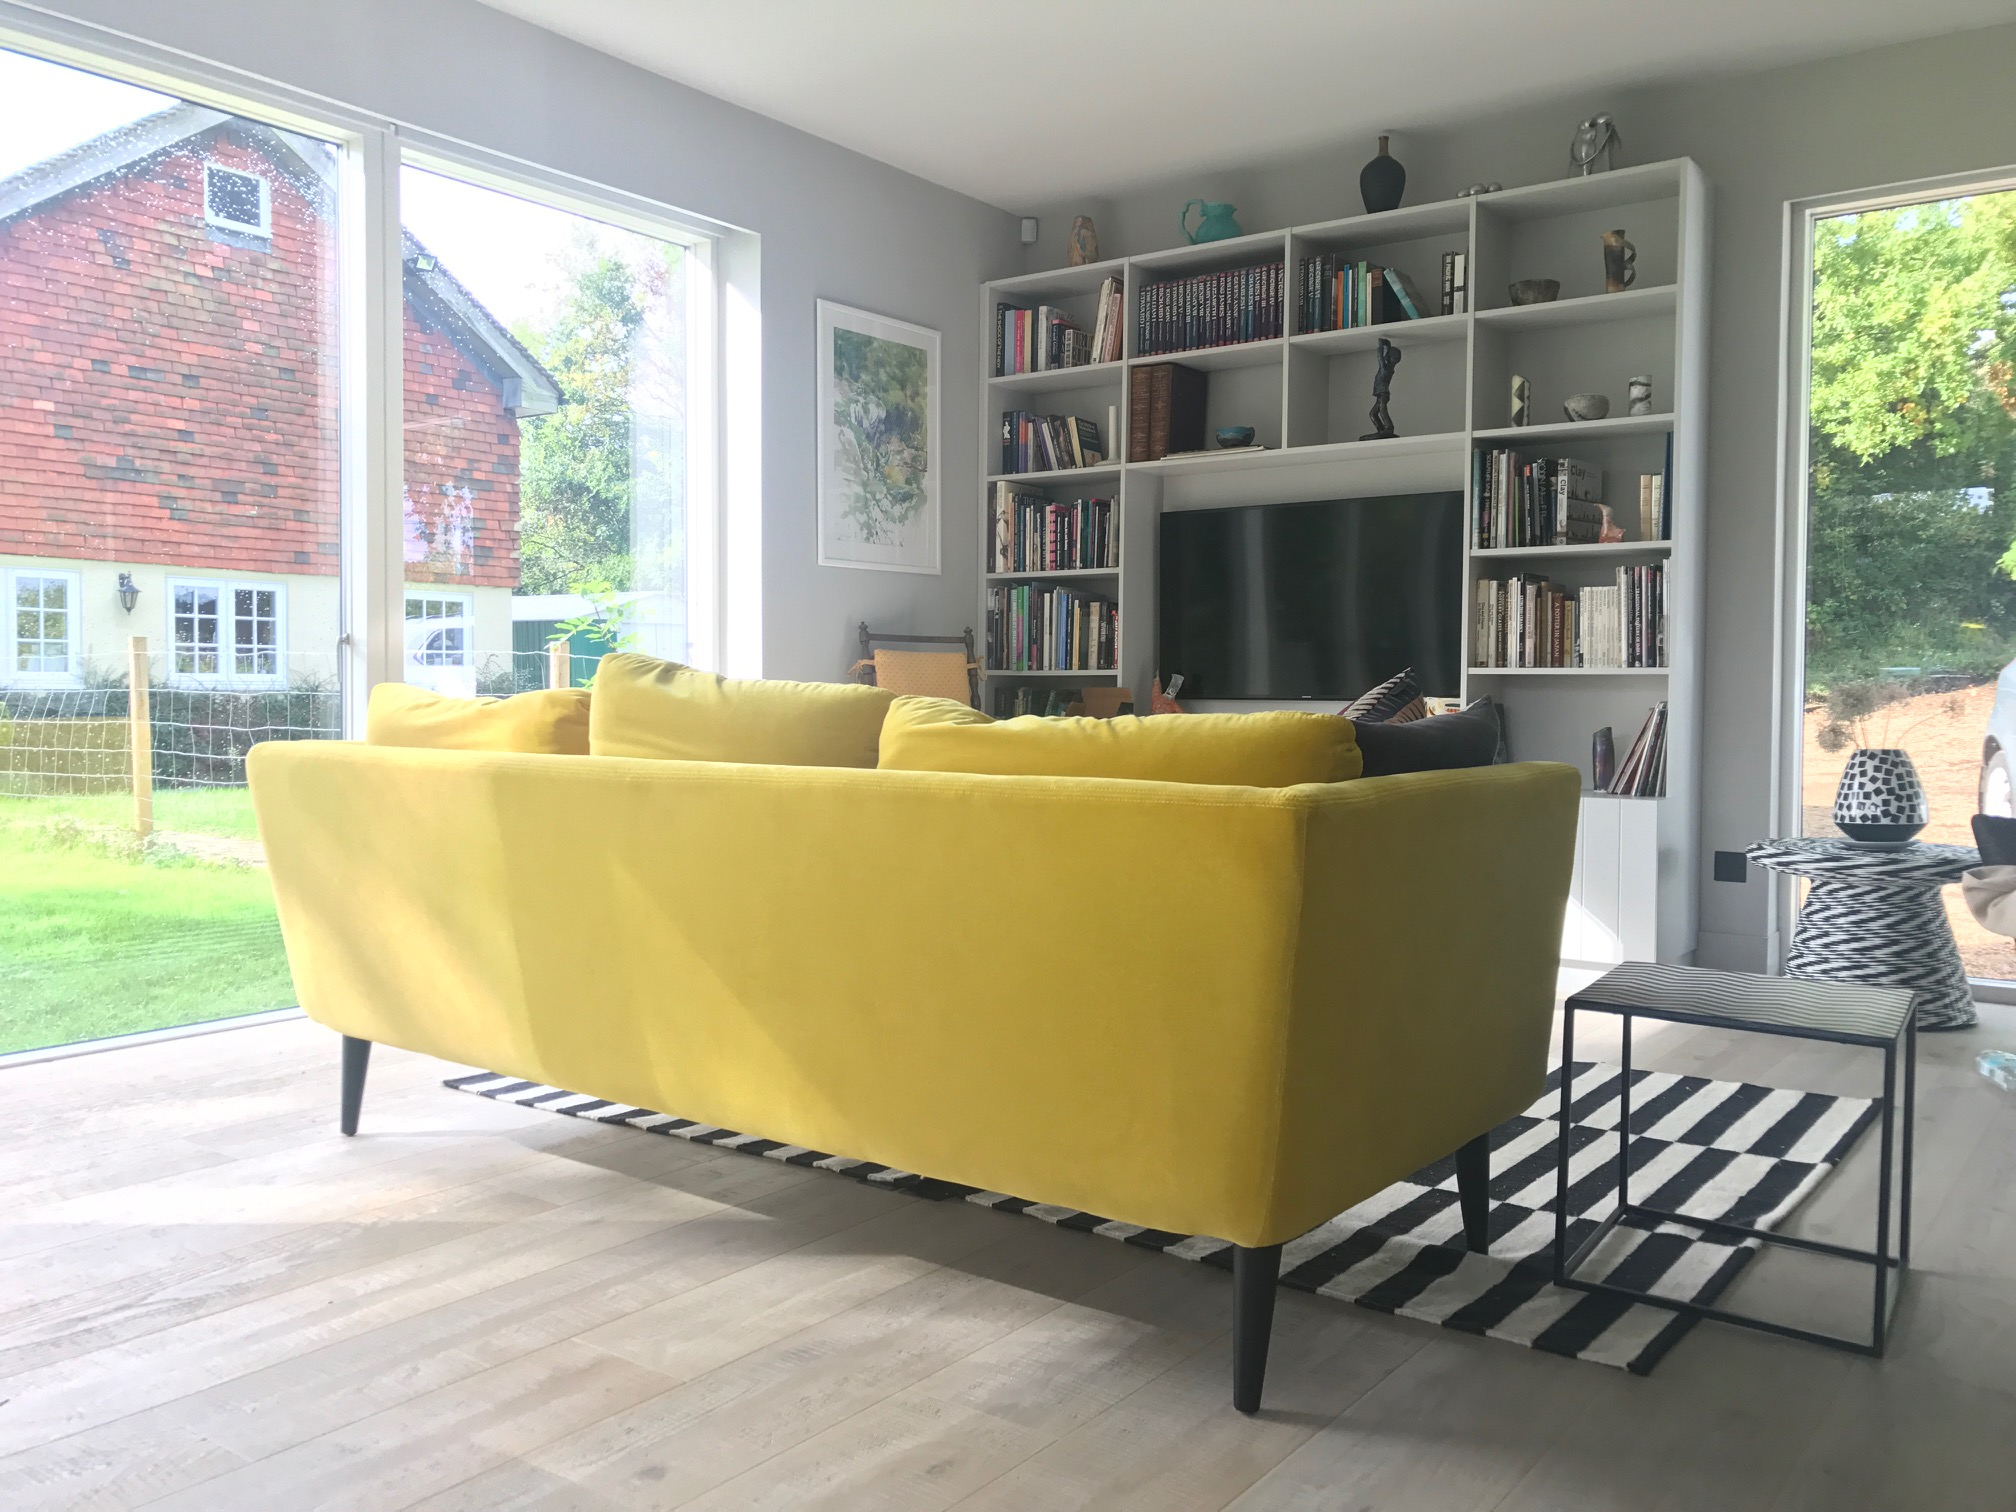 The Holly Sofa From Sofa.com In Canary Yellow Velvet Sits Perfectly In A N  All